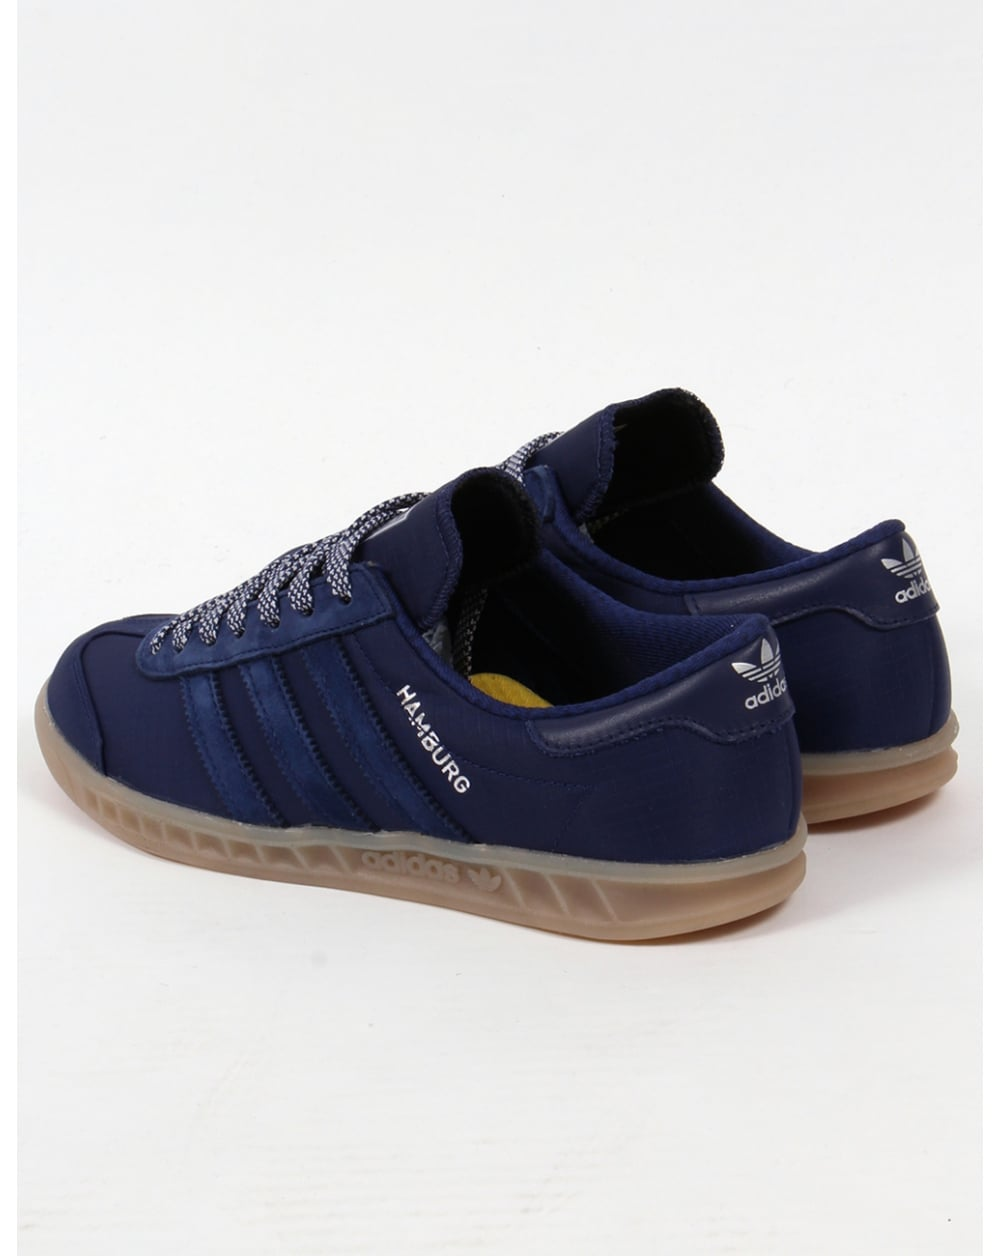 adidas originals hamburg tech trainers in black